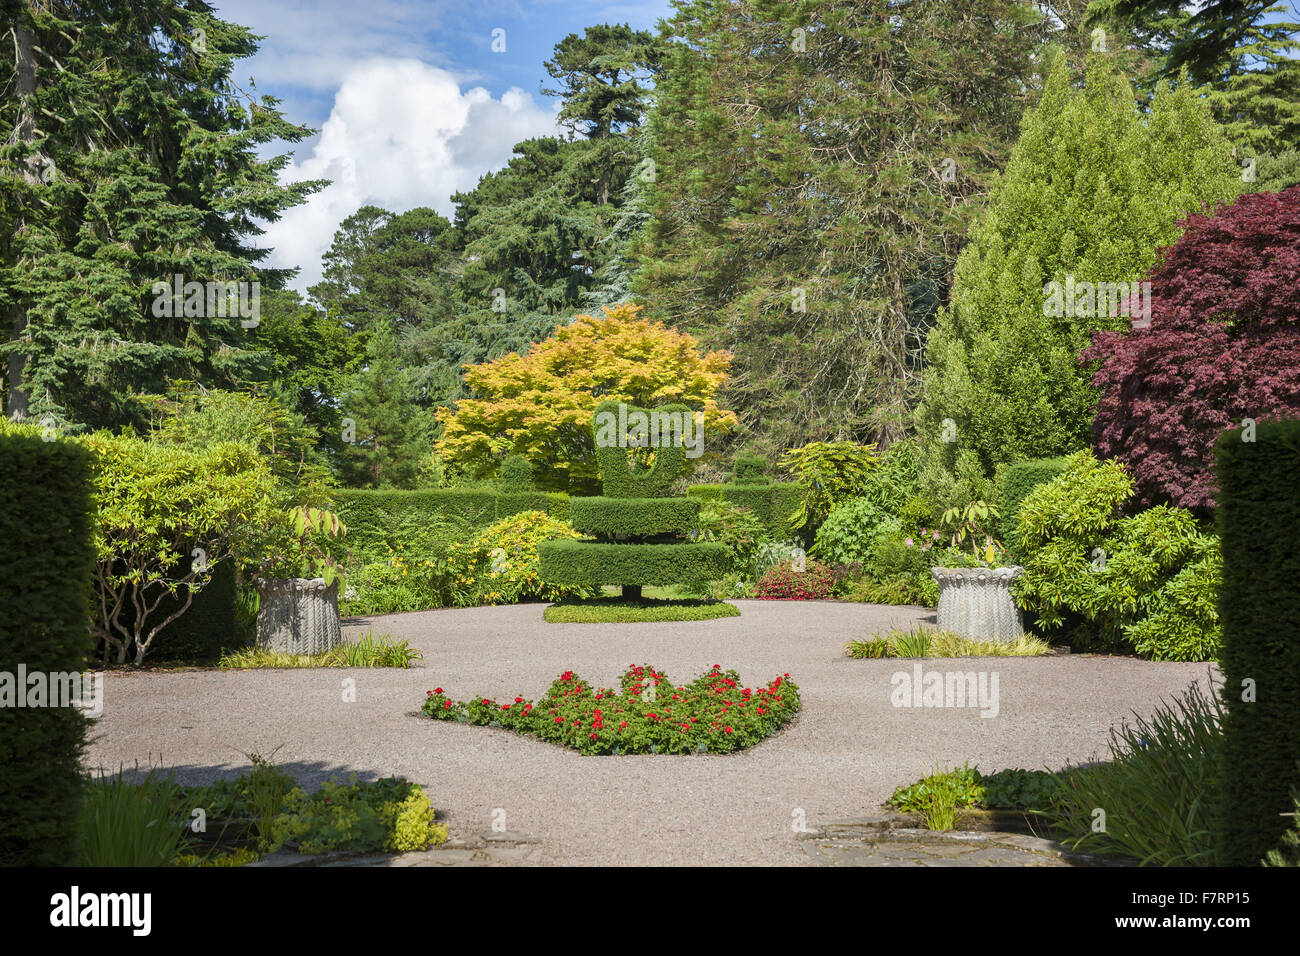 Shamrock Garden at Mount Stewart County Down Mount Stewart has